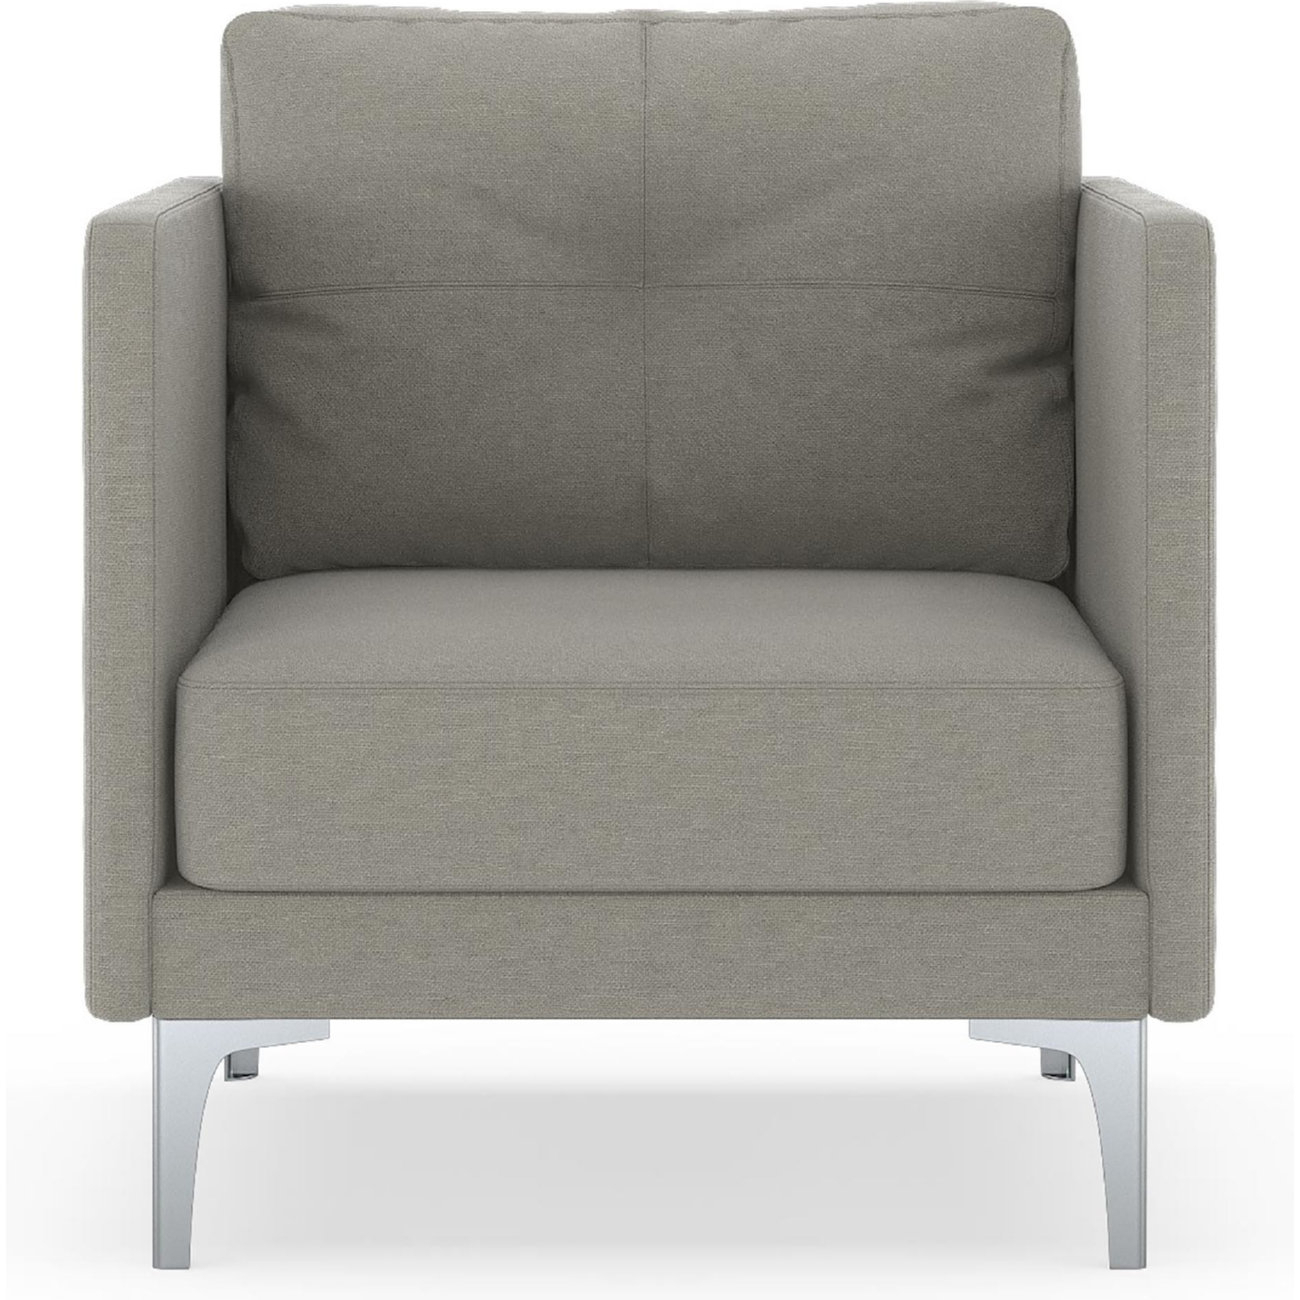 Nyekoncept 50060522 Tate Arm Chair In Cinder Gray Fabric On Chrome Intended For Tate Arm Sofa Chairs (Image 12 of 25)